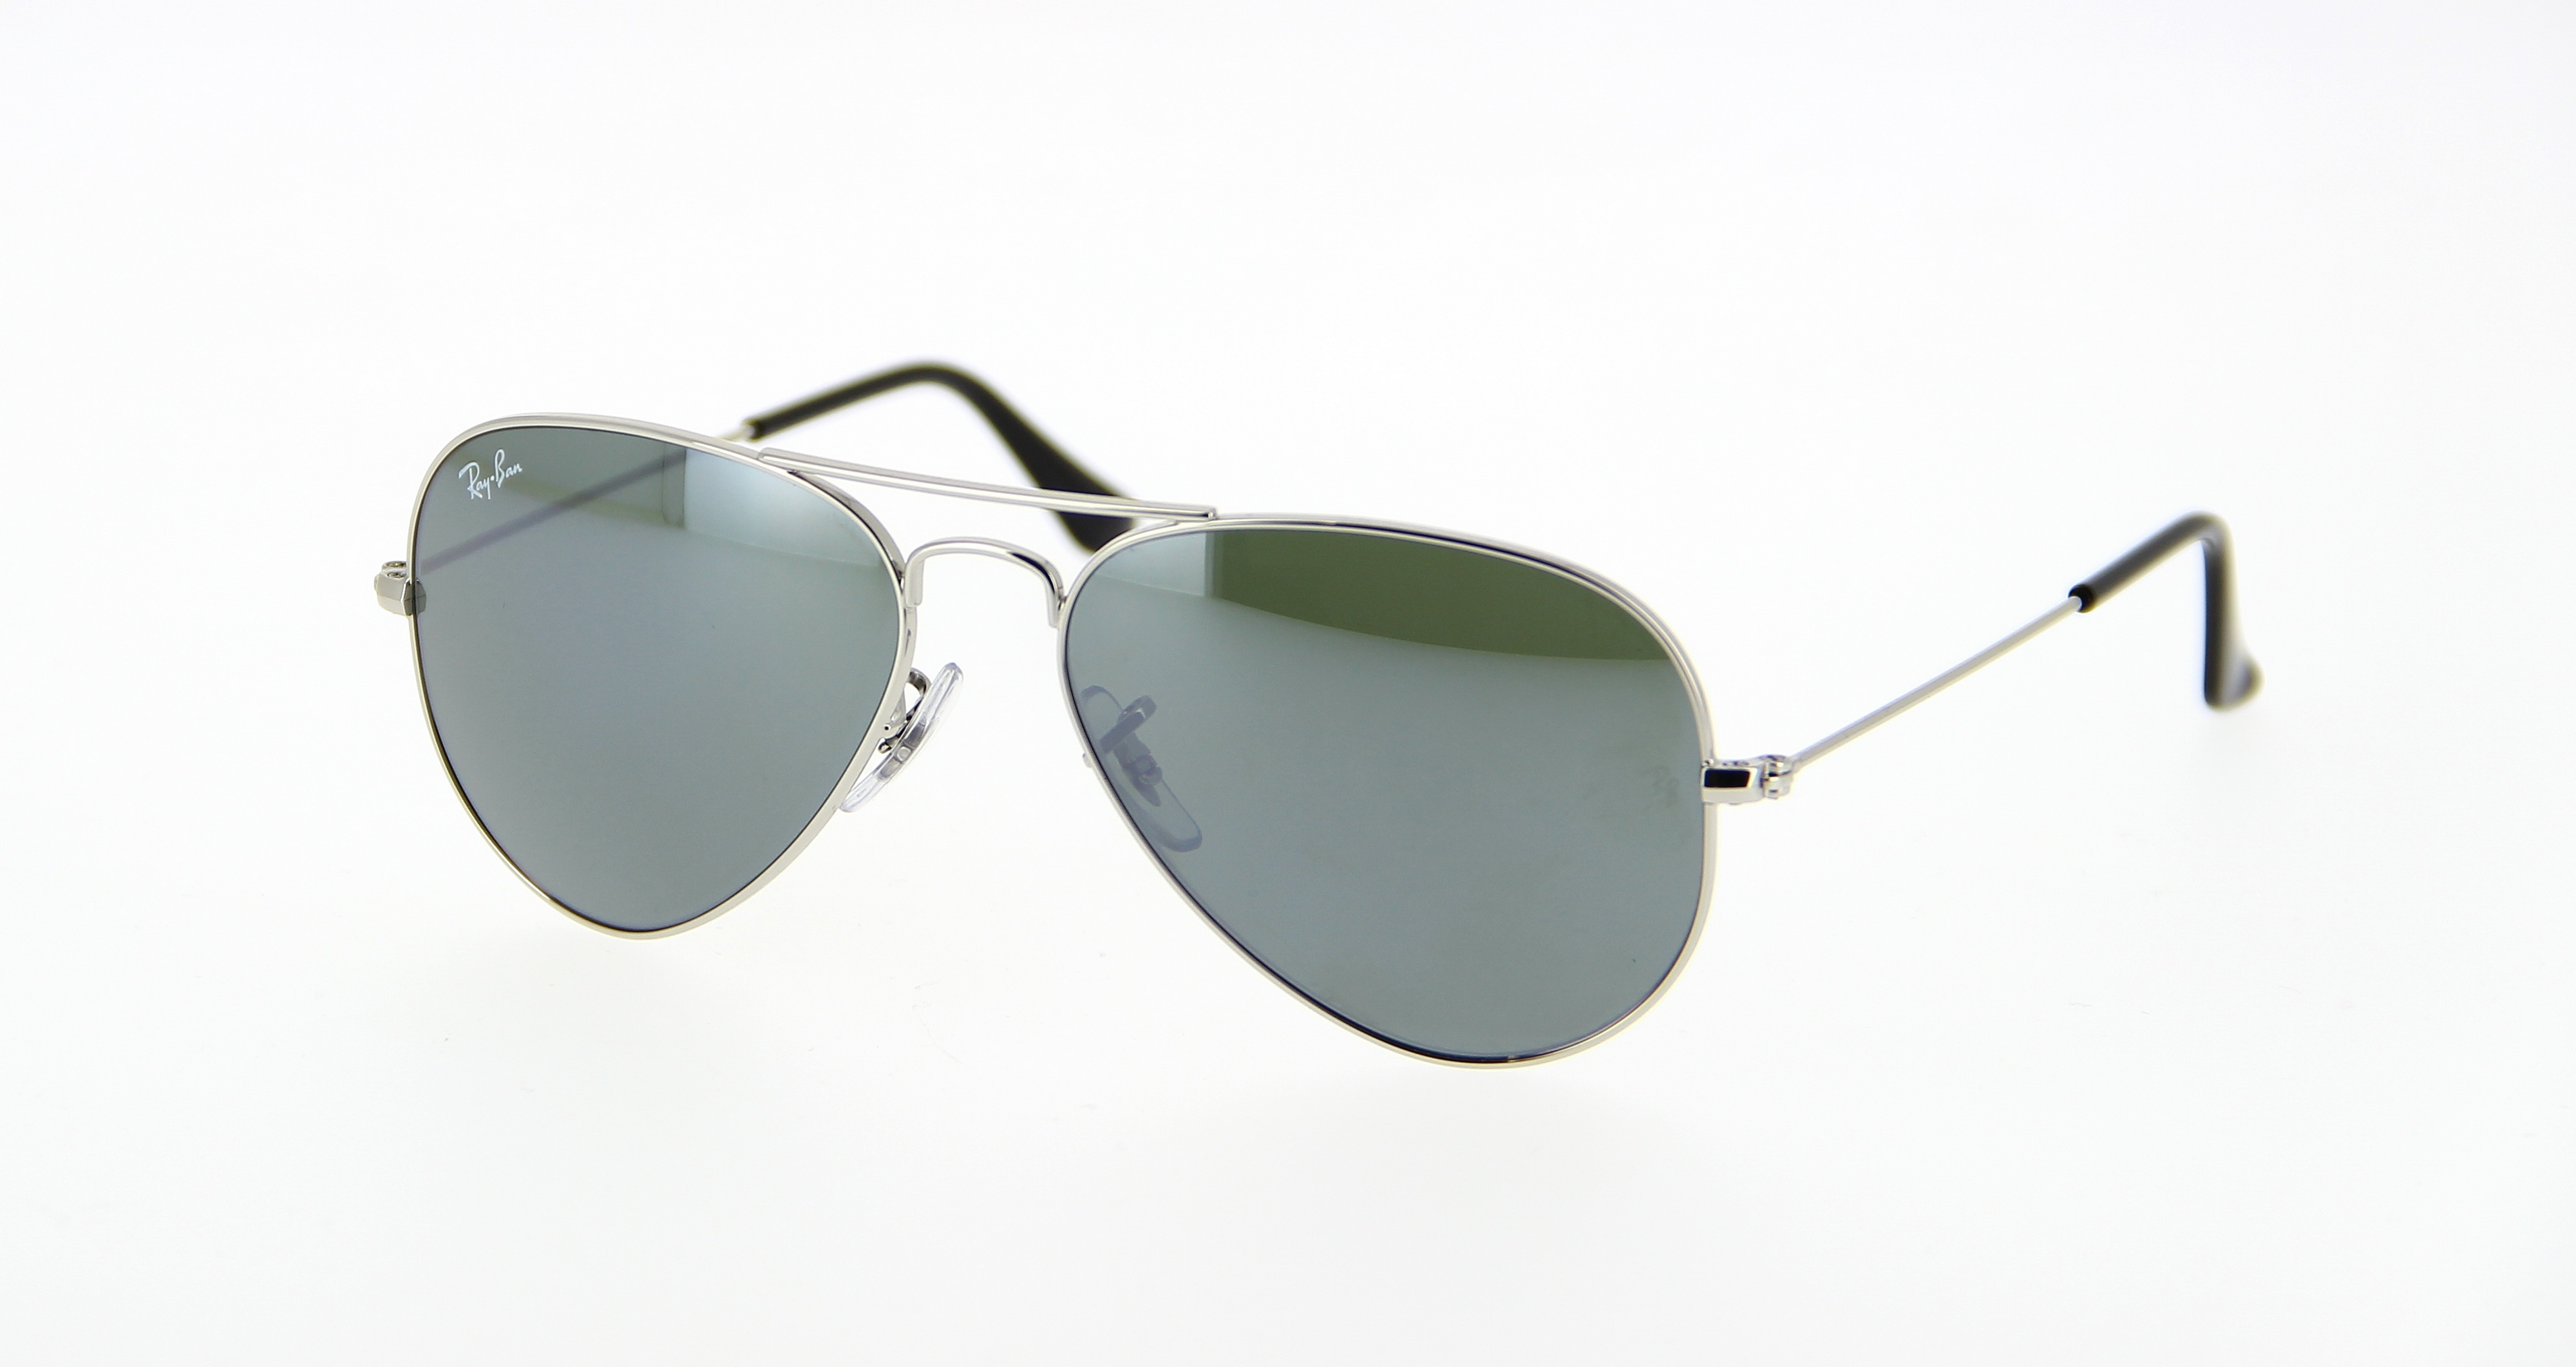 02c48c3192 Gafas Ray Ban Aviator 3025 Colombia   www.tapdance.org